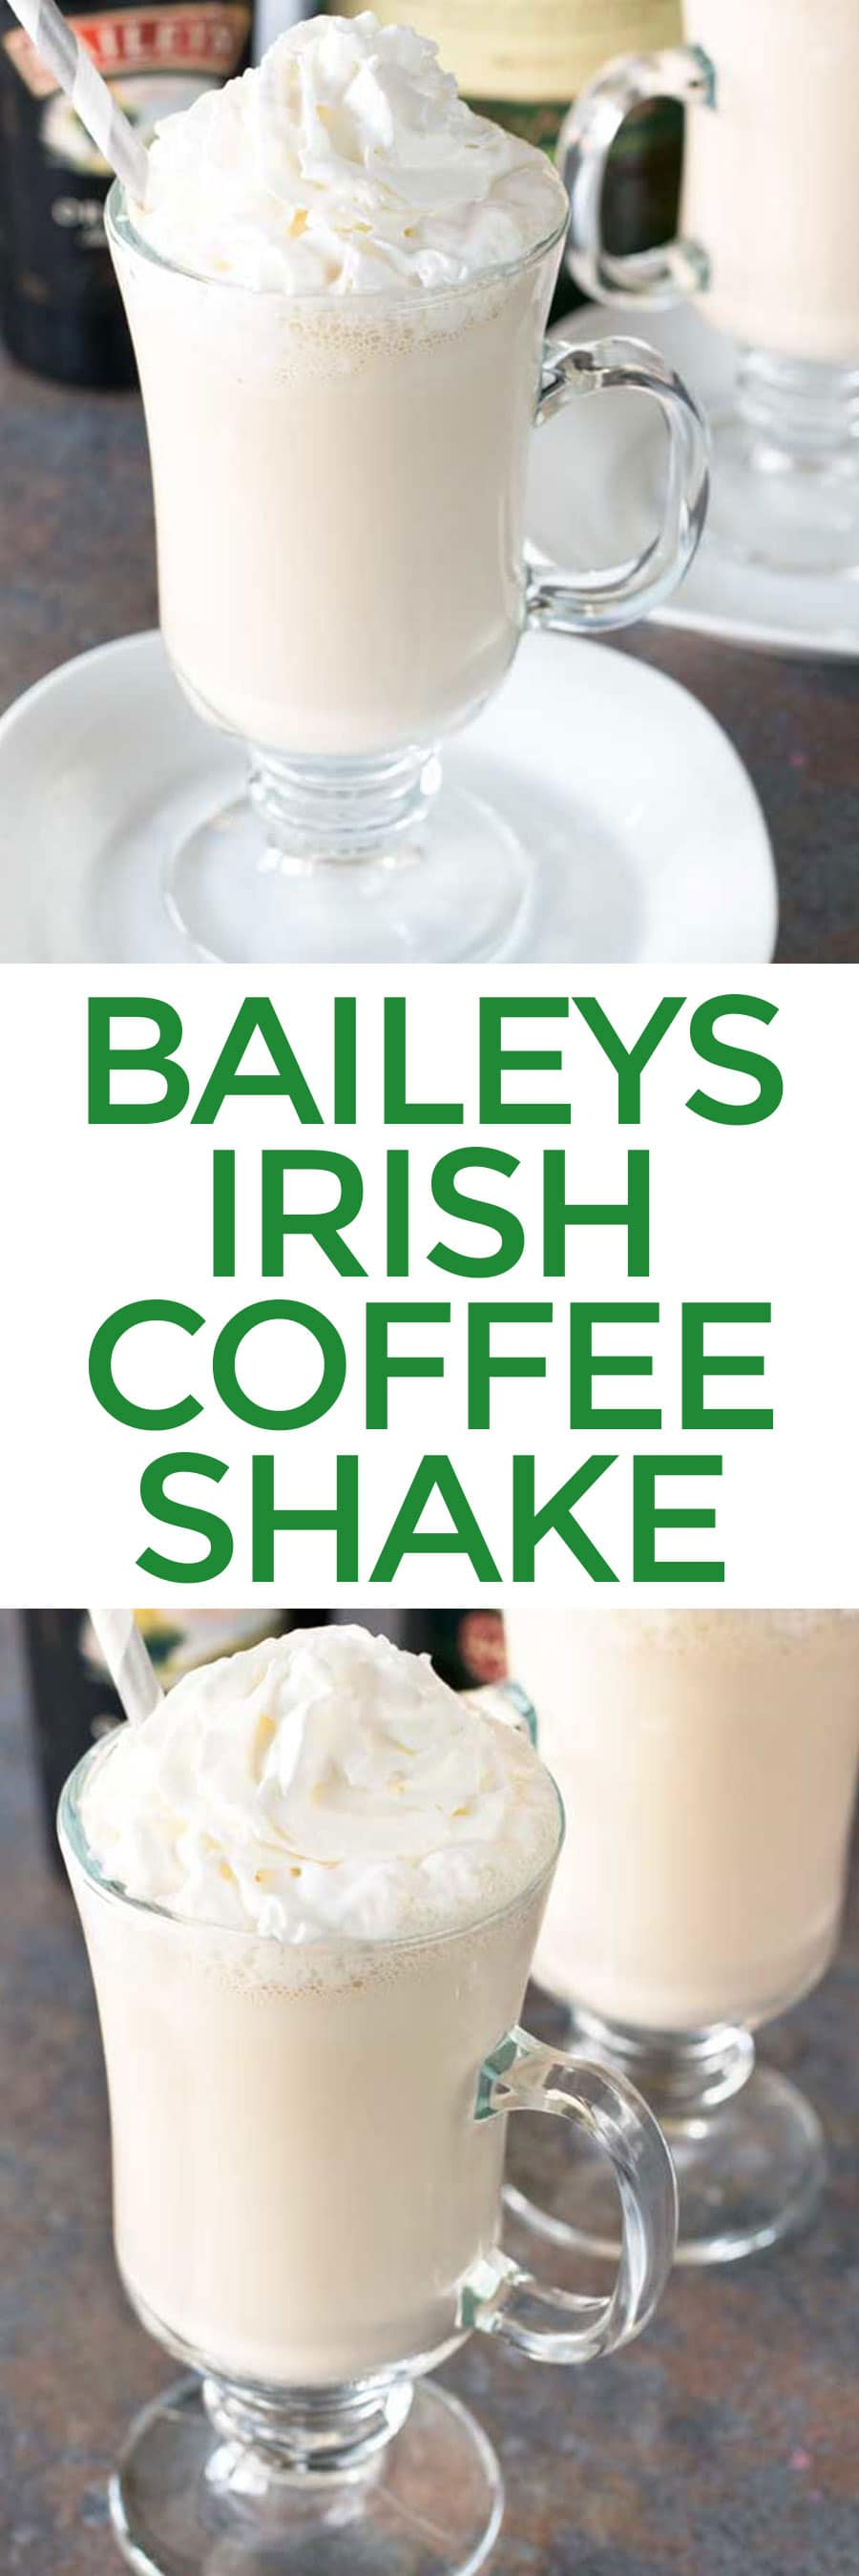 Bailey's Irish Coffee Shake | cakenknife.com #appetizer #beef #snack #stpatricksday